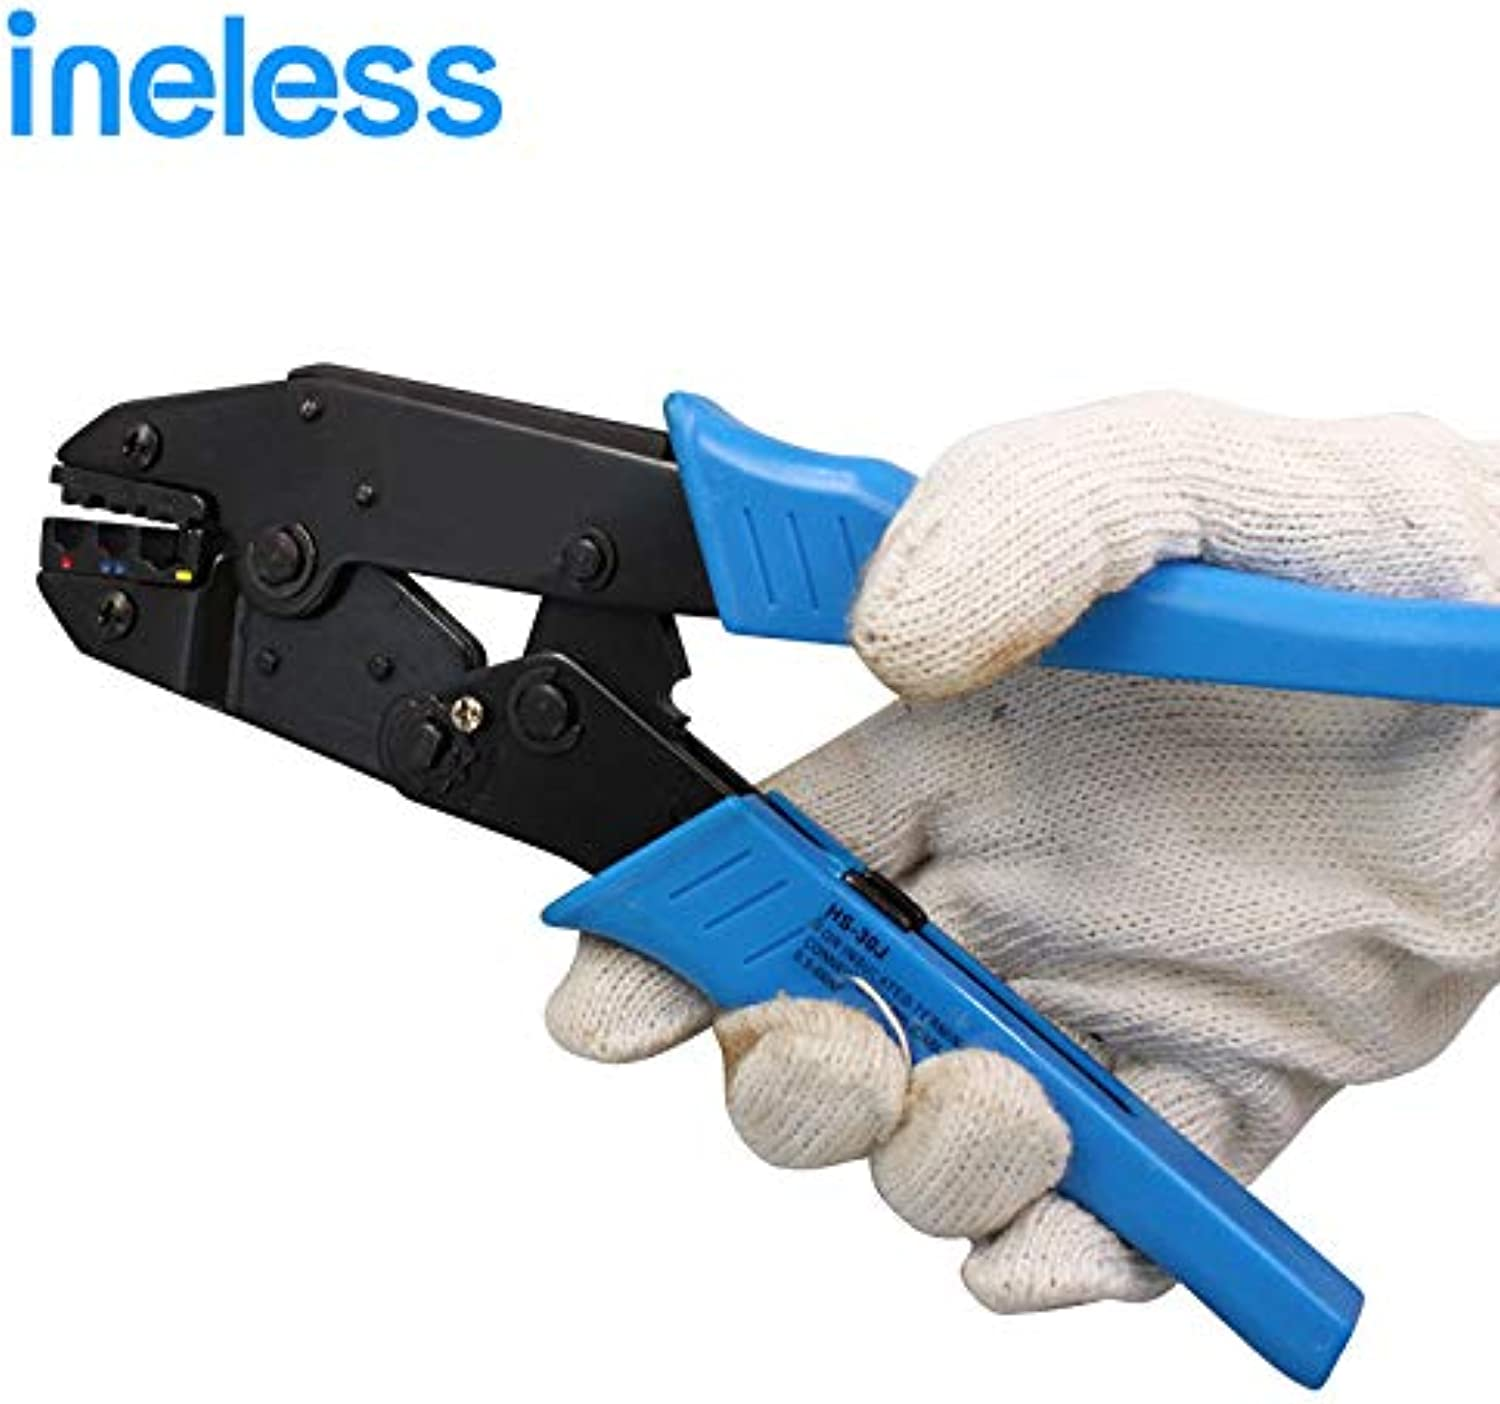 HS-30J 0.5-6.0 mm2 Terminals Crimping Tool Crimping Plier 22-10AWG Insulated Terminals Ratchet Crimping Tool